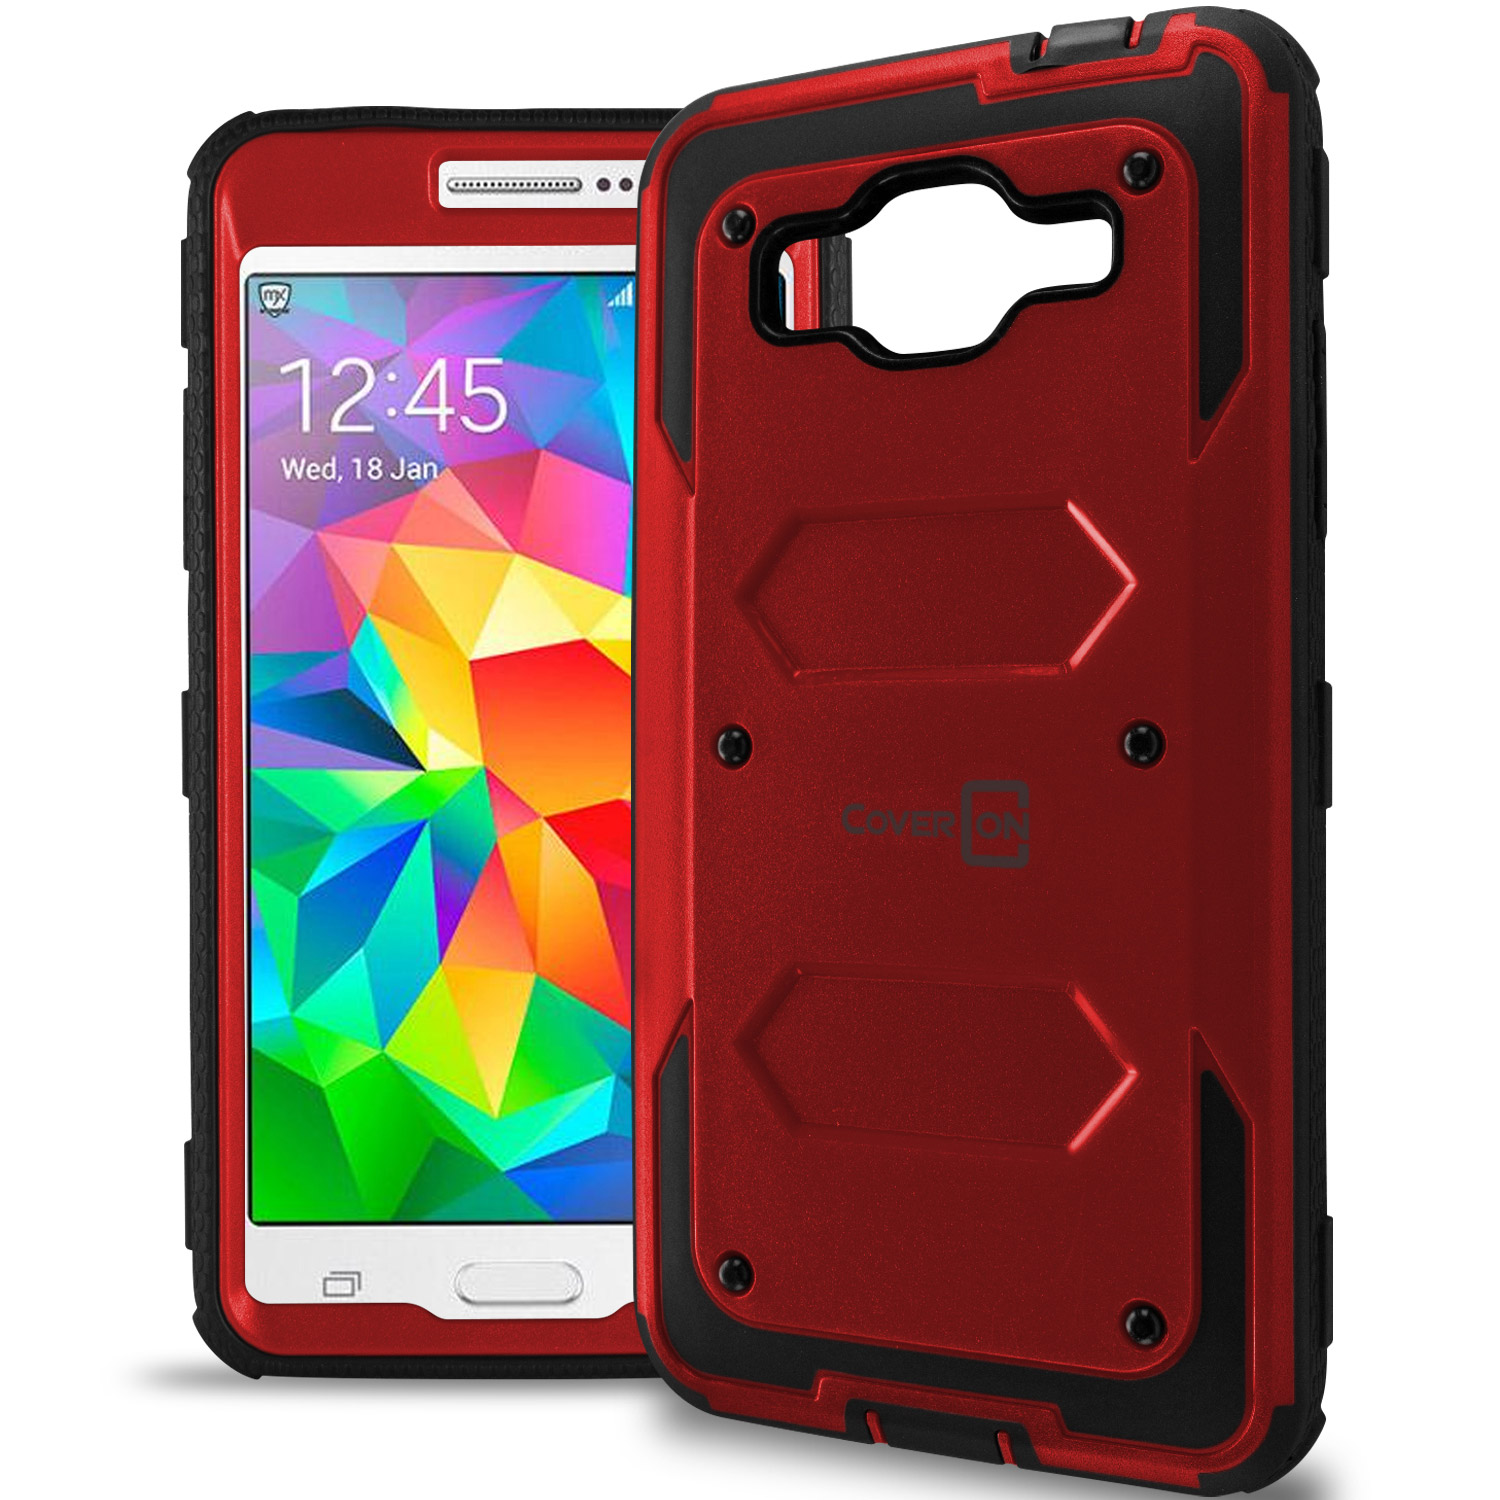 hot sale online d4058 19d0e Details about Red / Black Protective Hybrid Phone Cover Case for Samsung  Galaxy Grand Prime